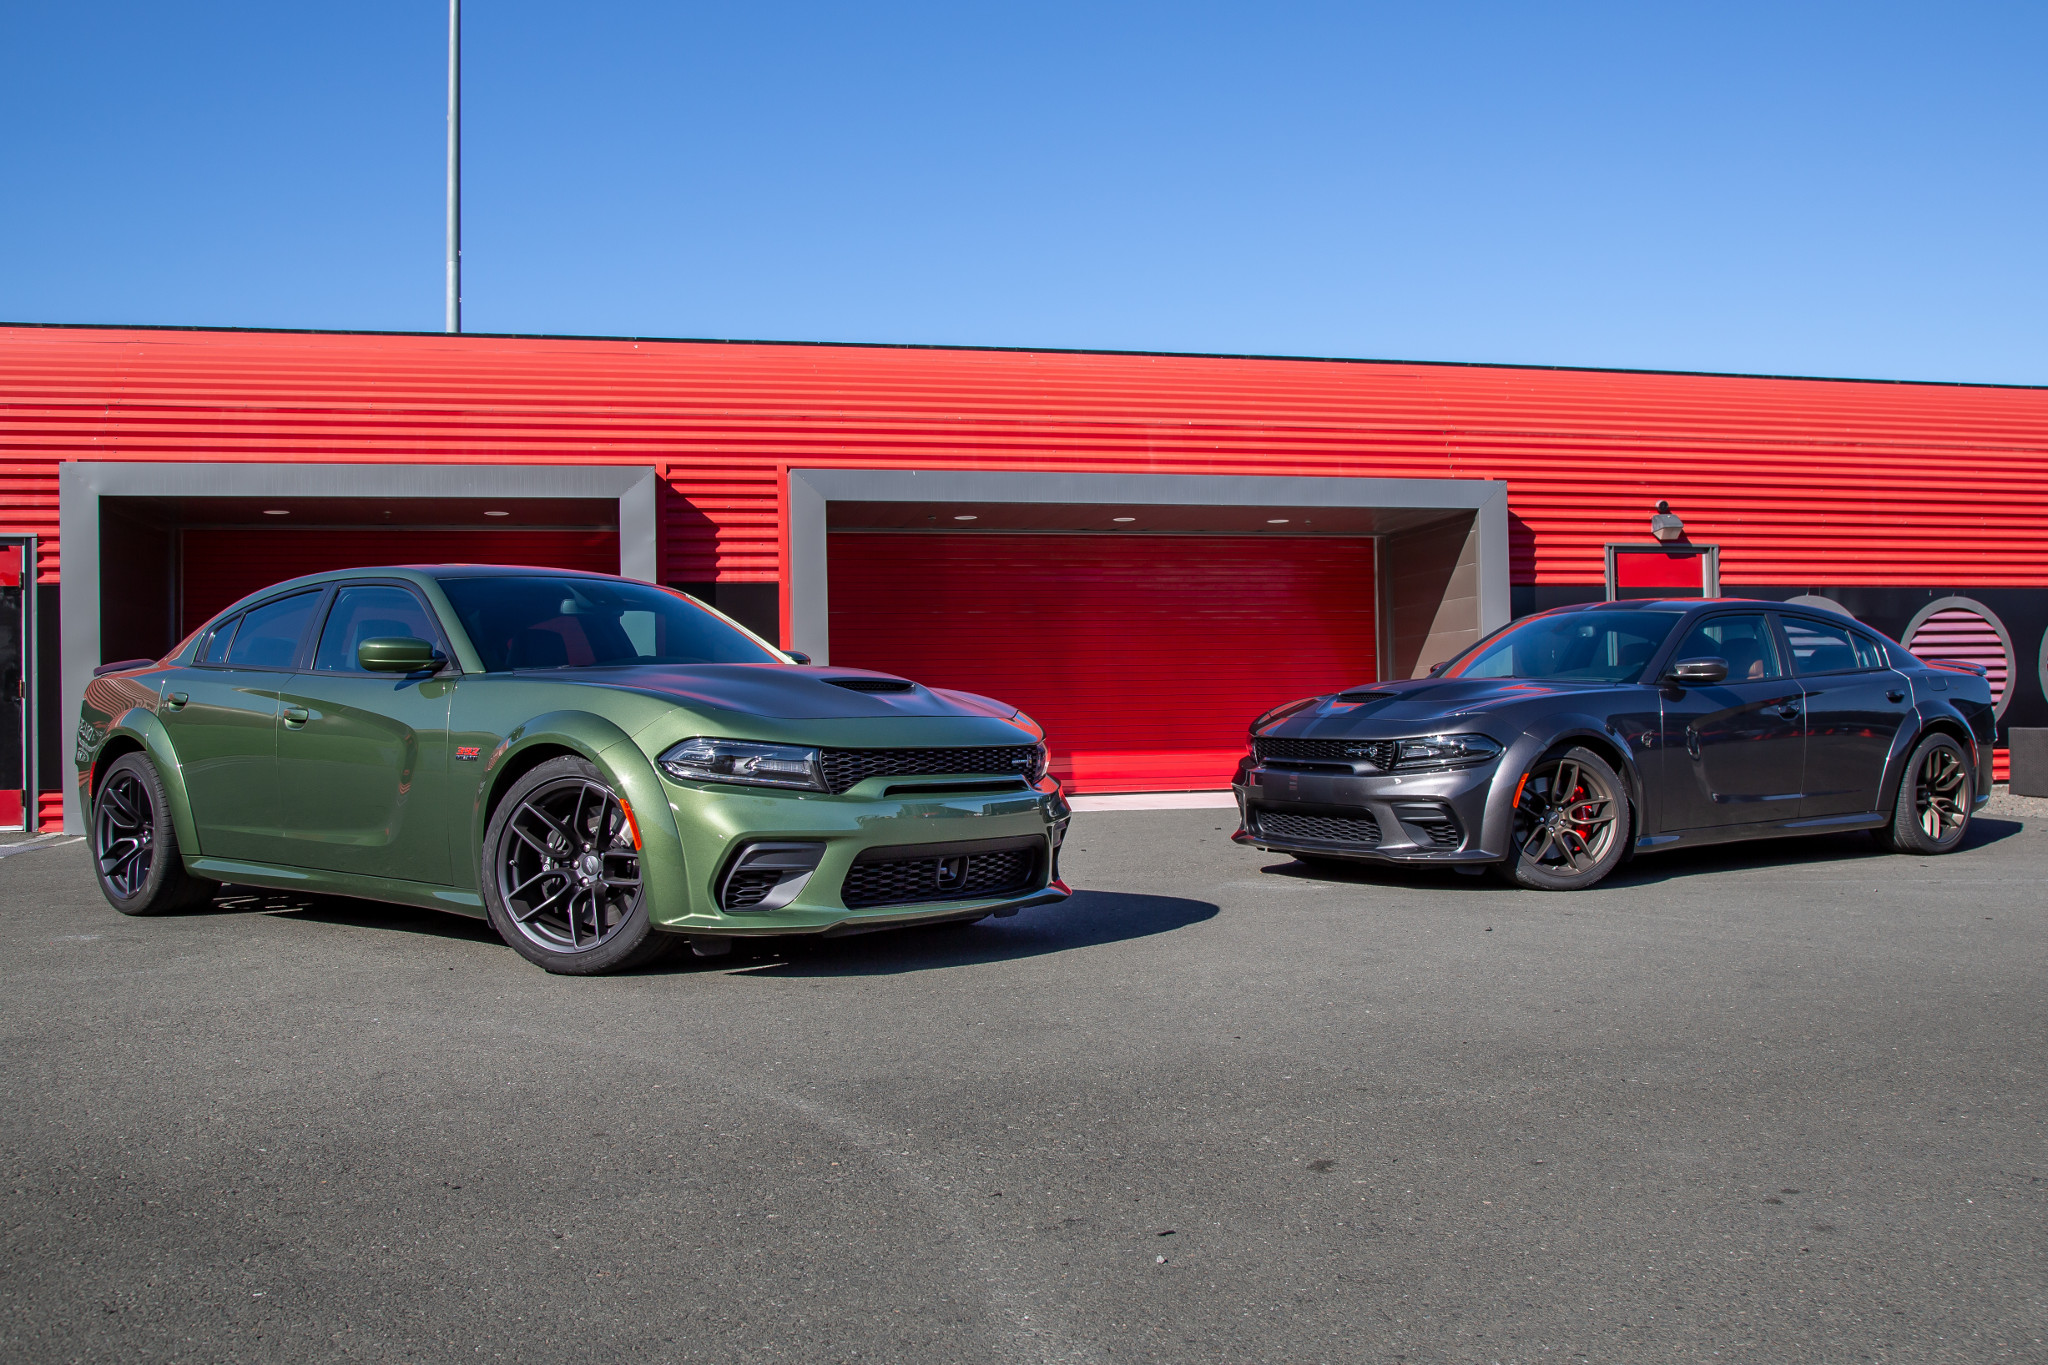 2020 Dodge Charger Scat Pack and Hellcat Widebody Review: Which to Buy?